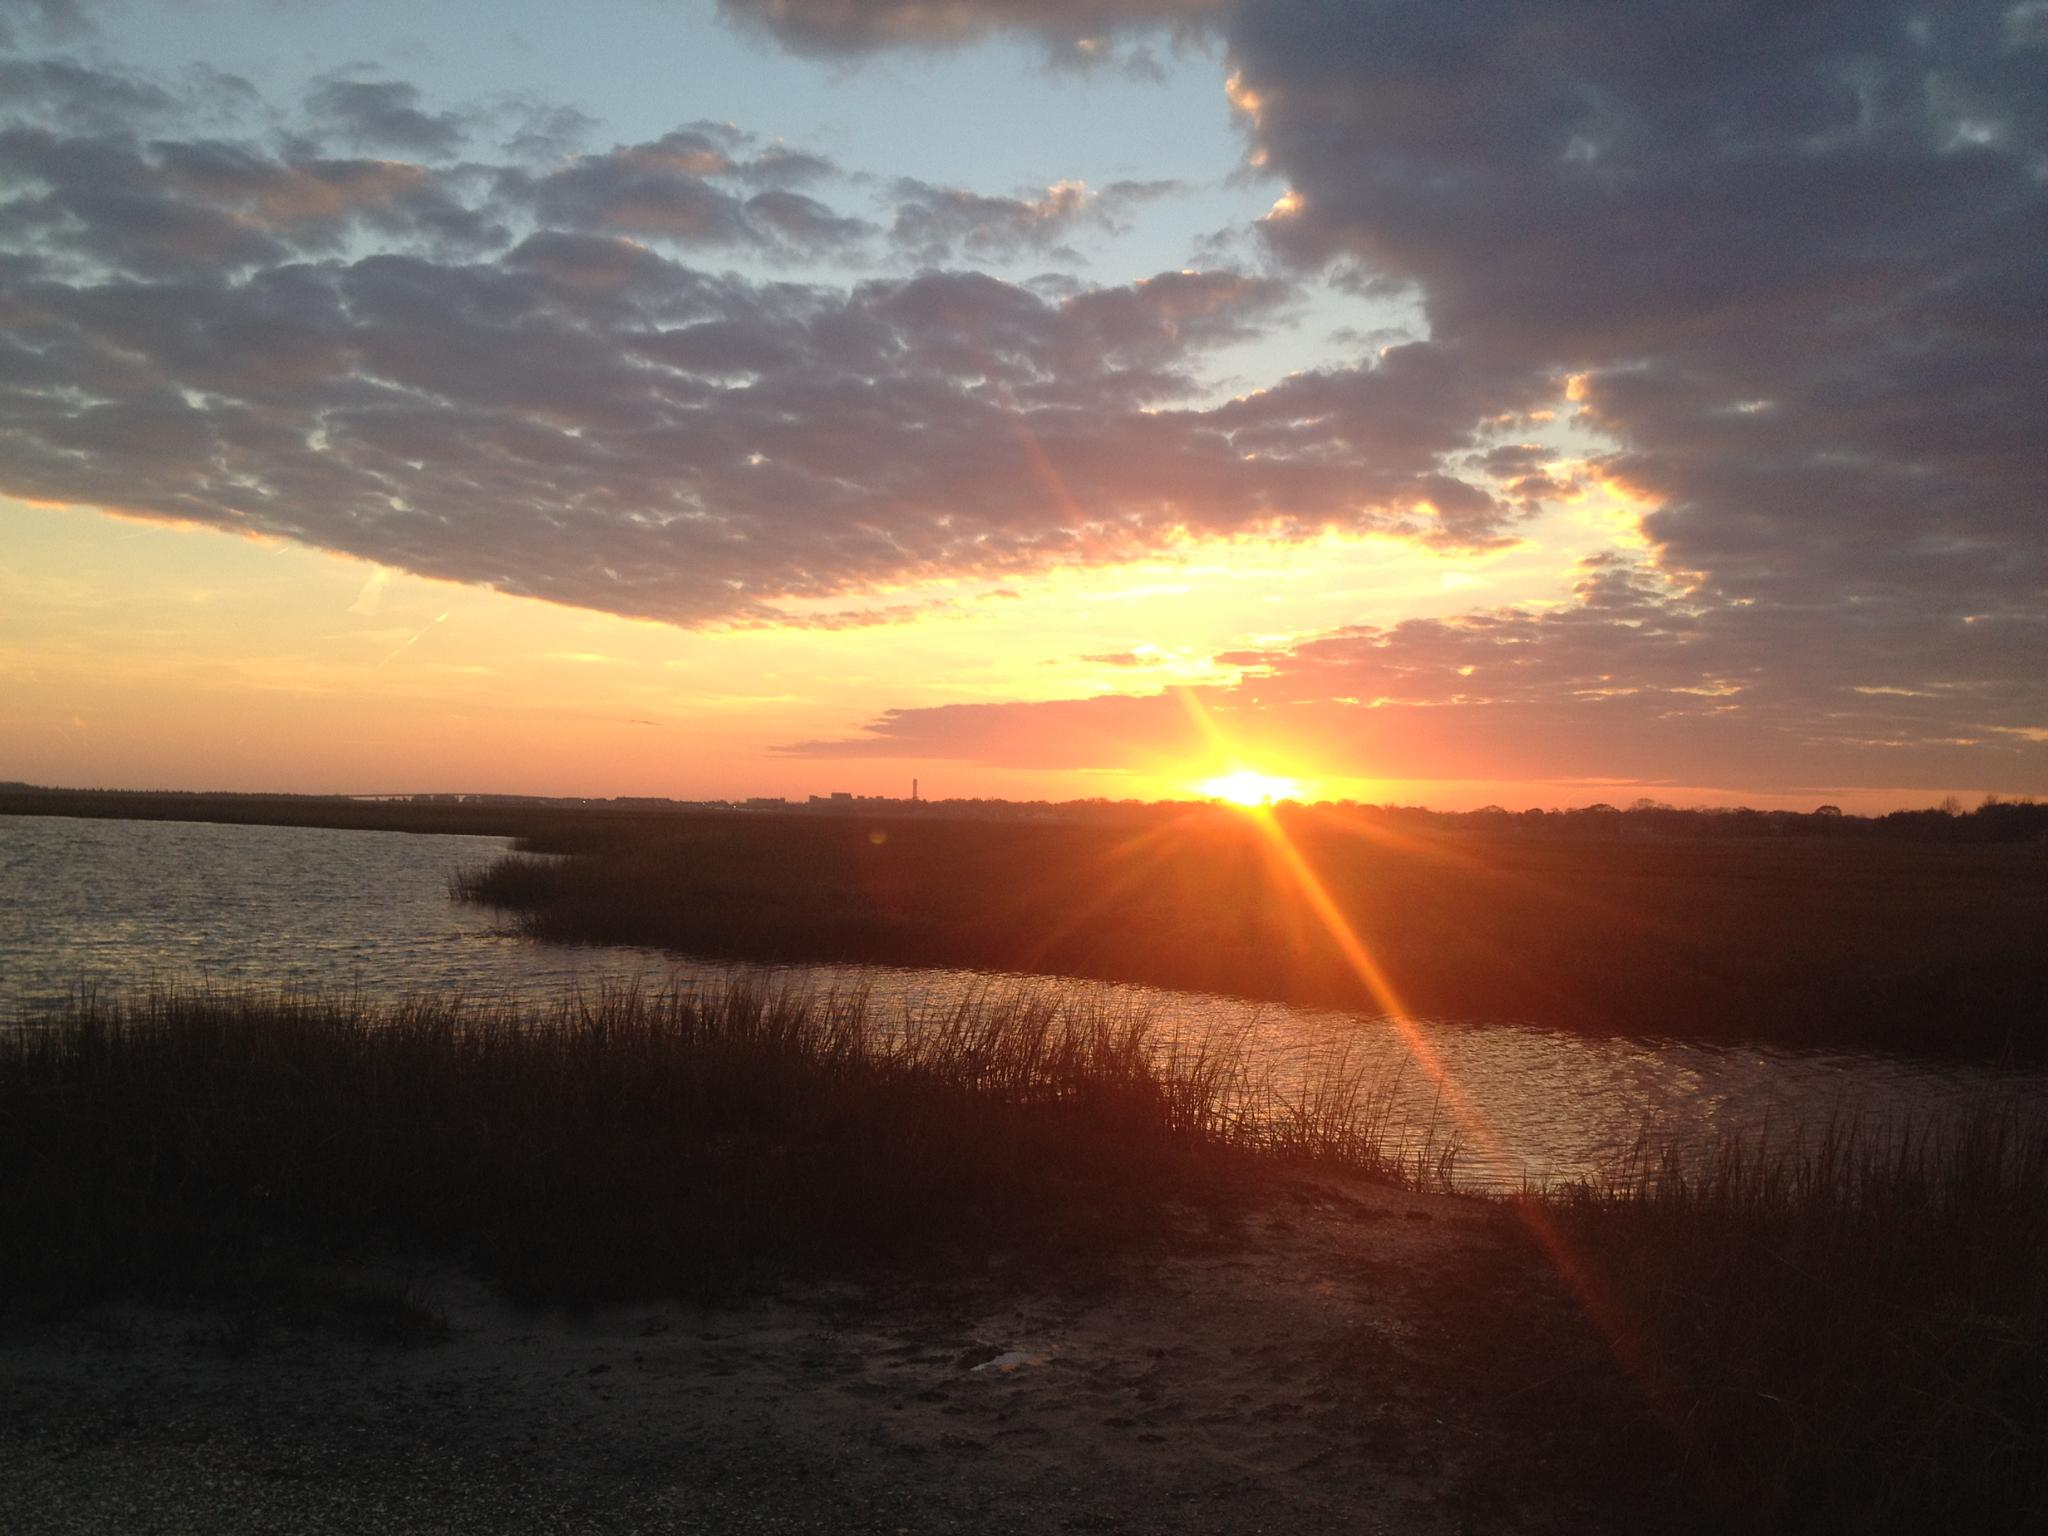 Somers Point, NJ Sunset by renee.pagliughi